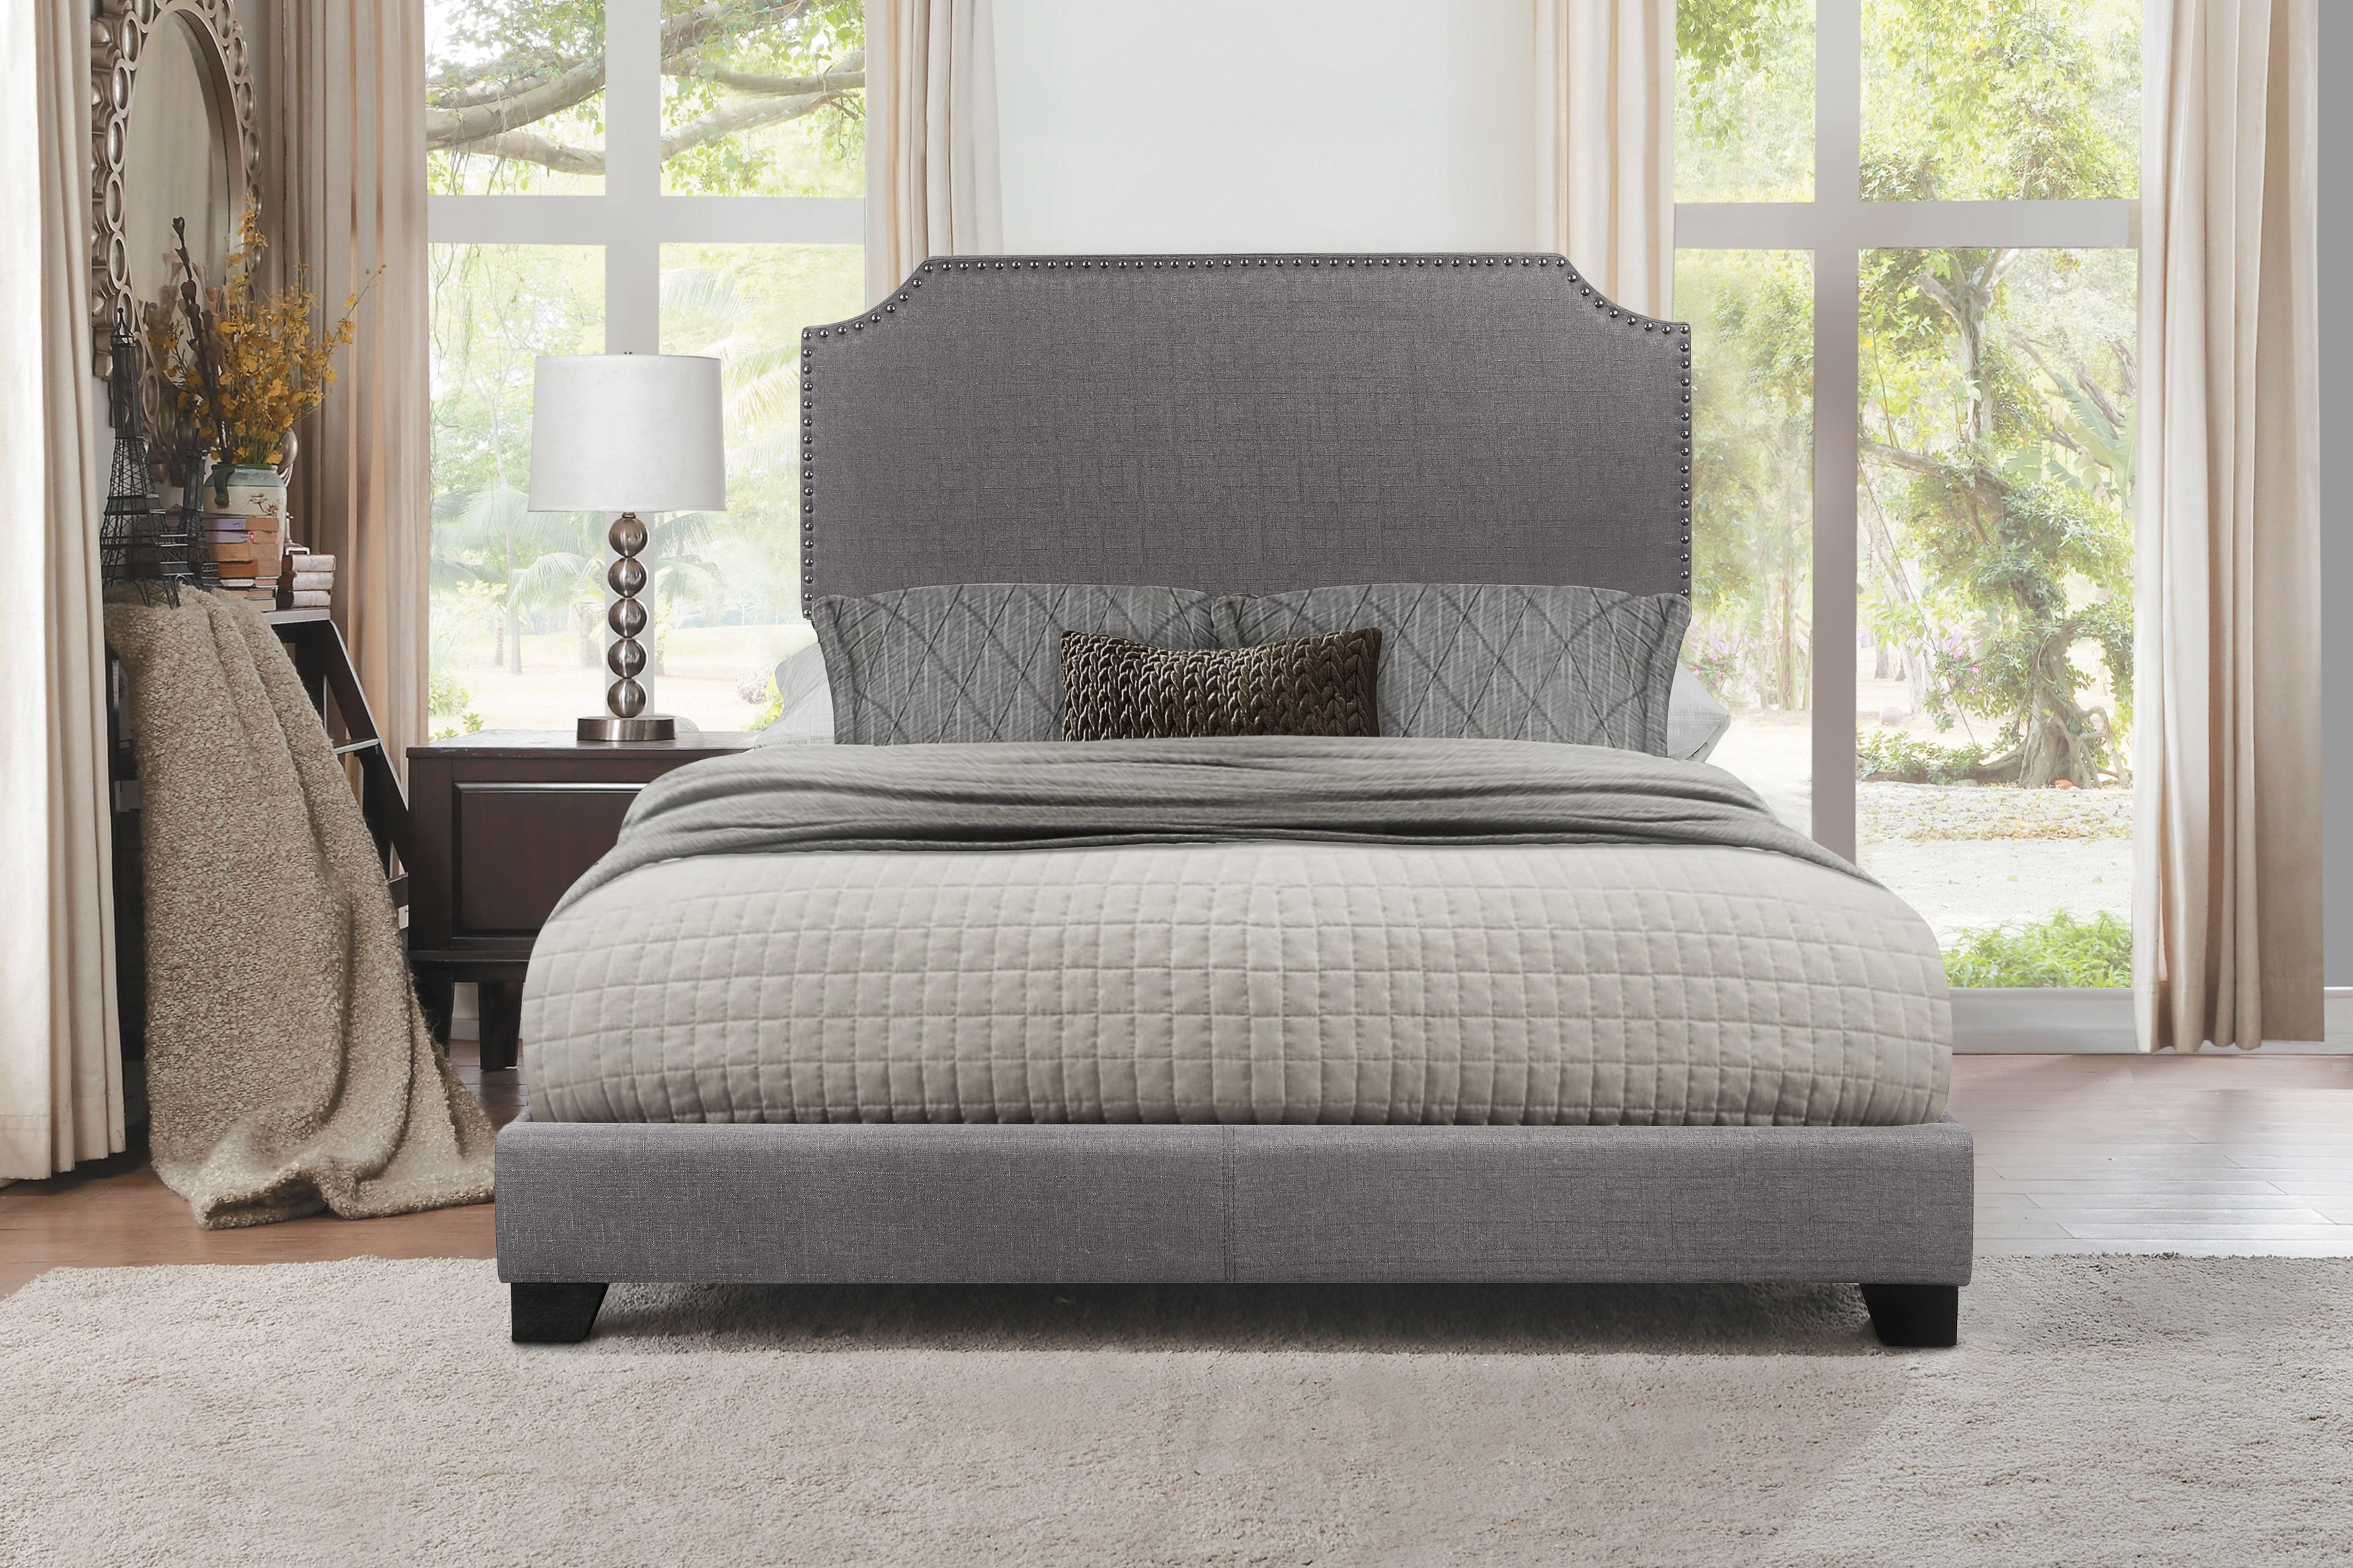 Carshalton Gray Queen Upholstered Bed King Upholstered Bed